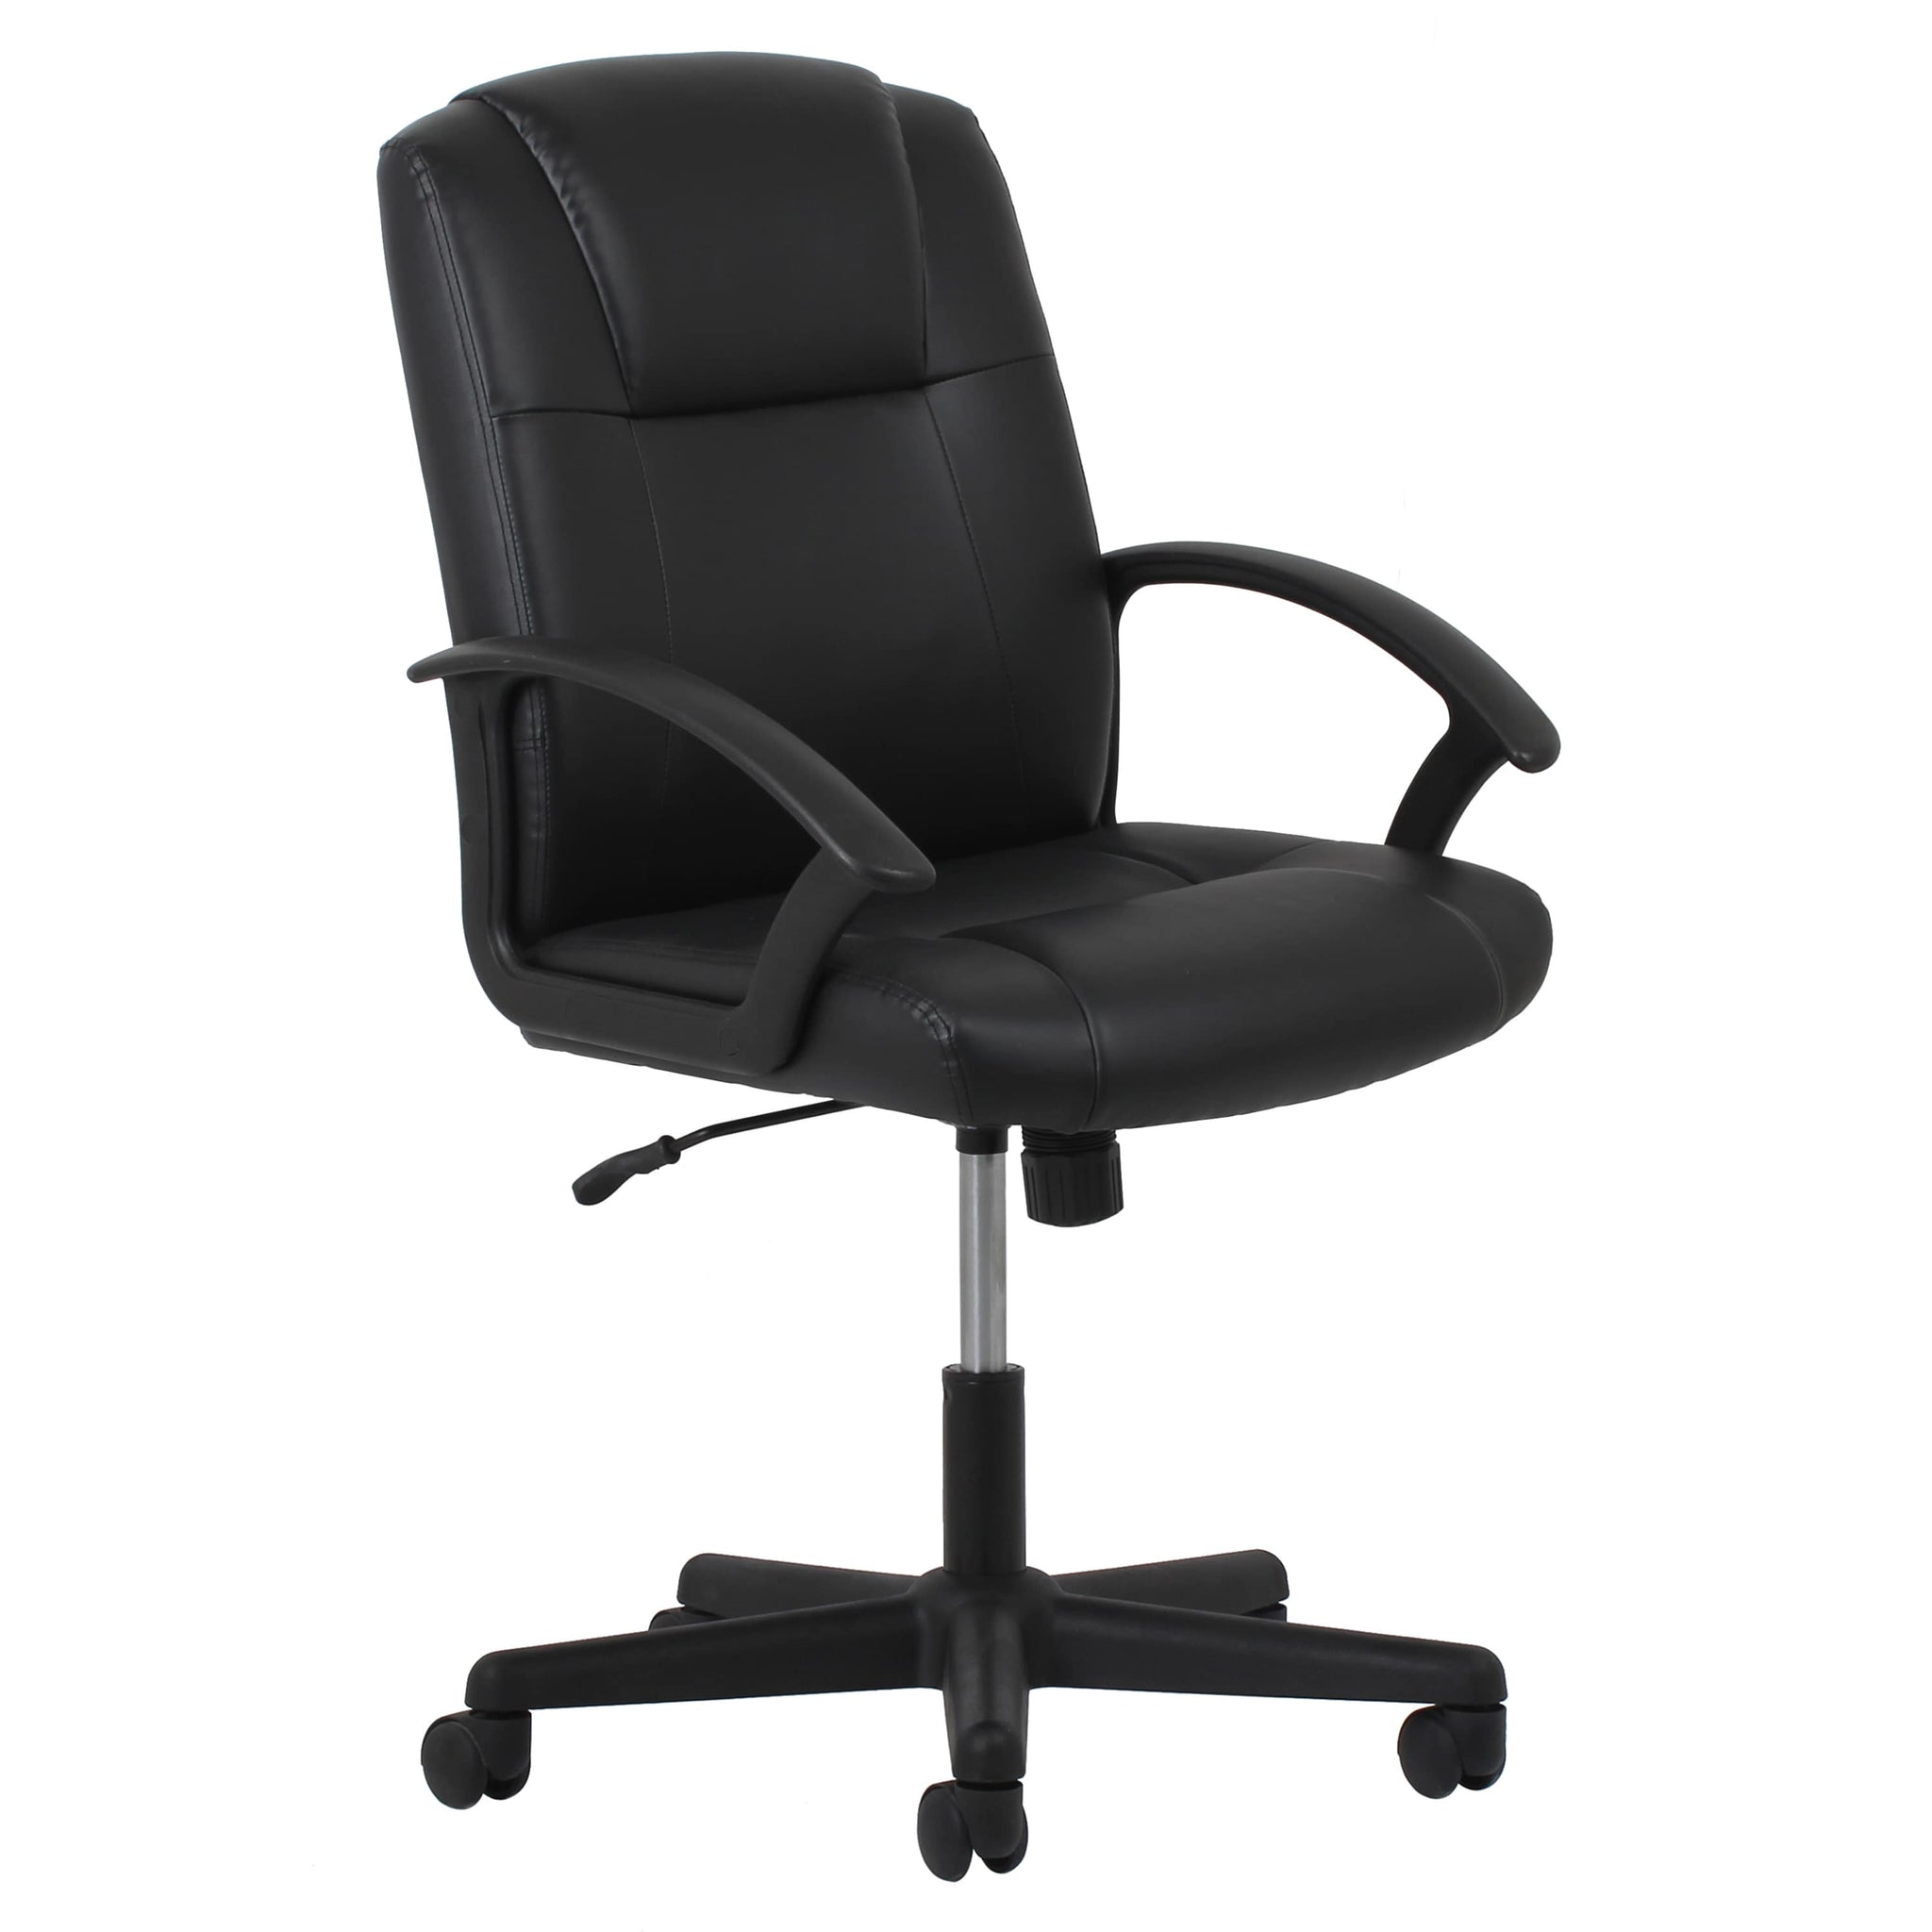 Adjustable Black Leather Office Chair